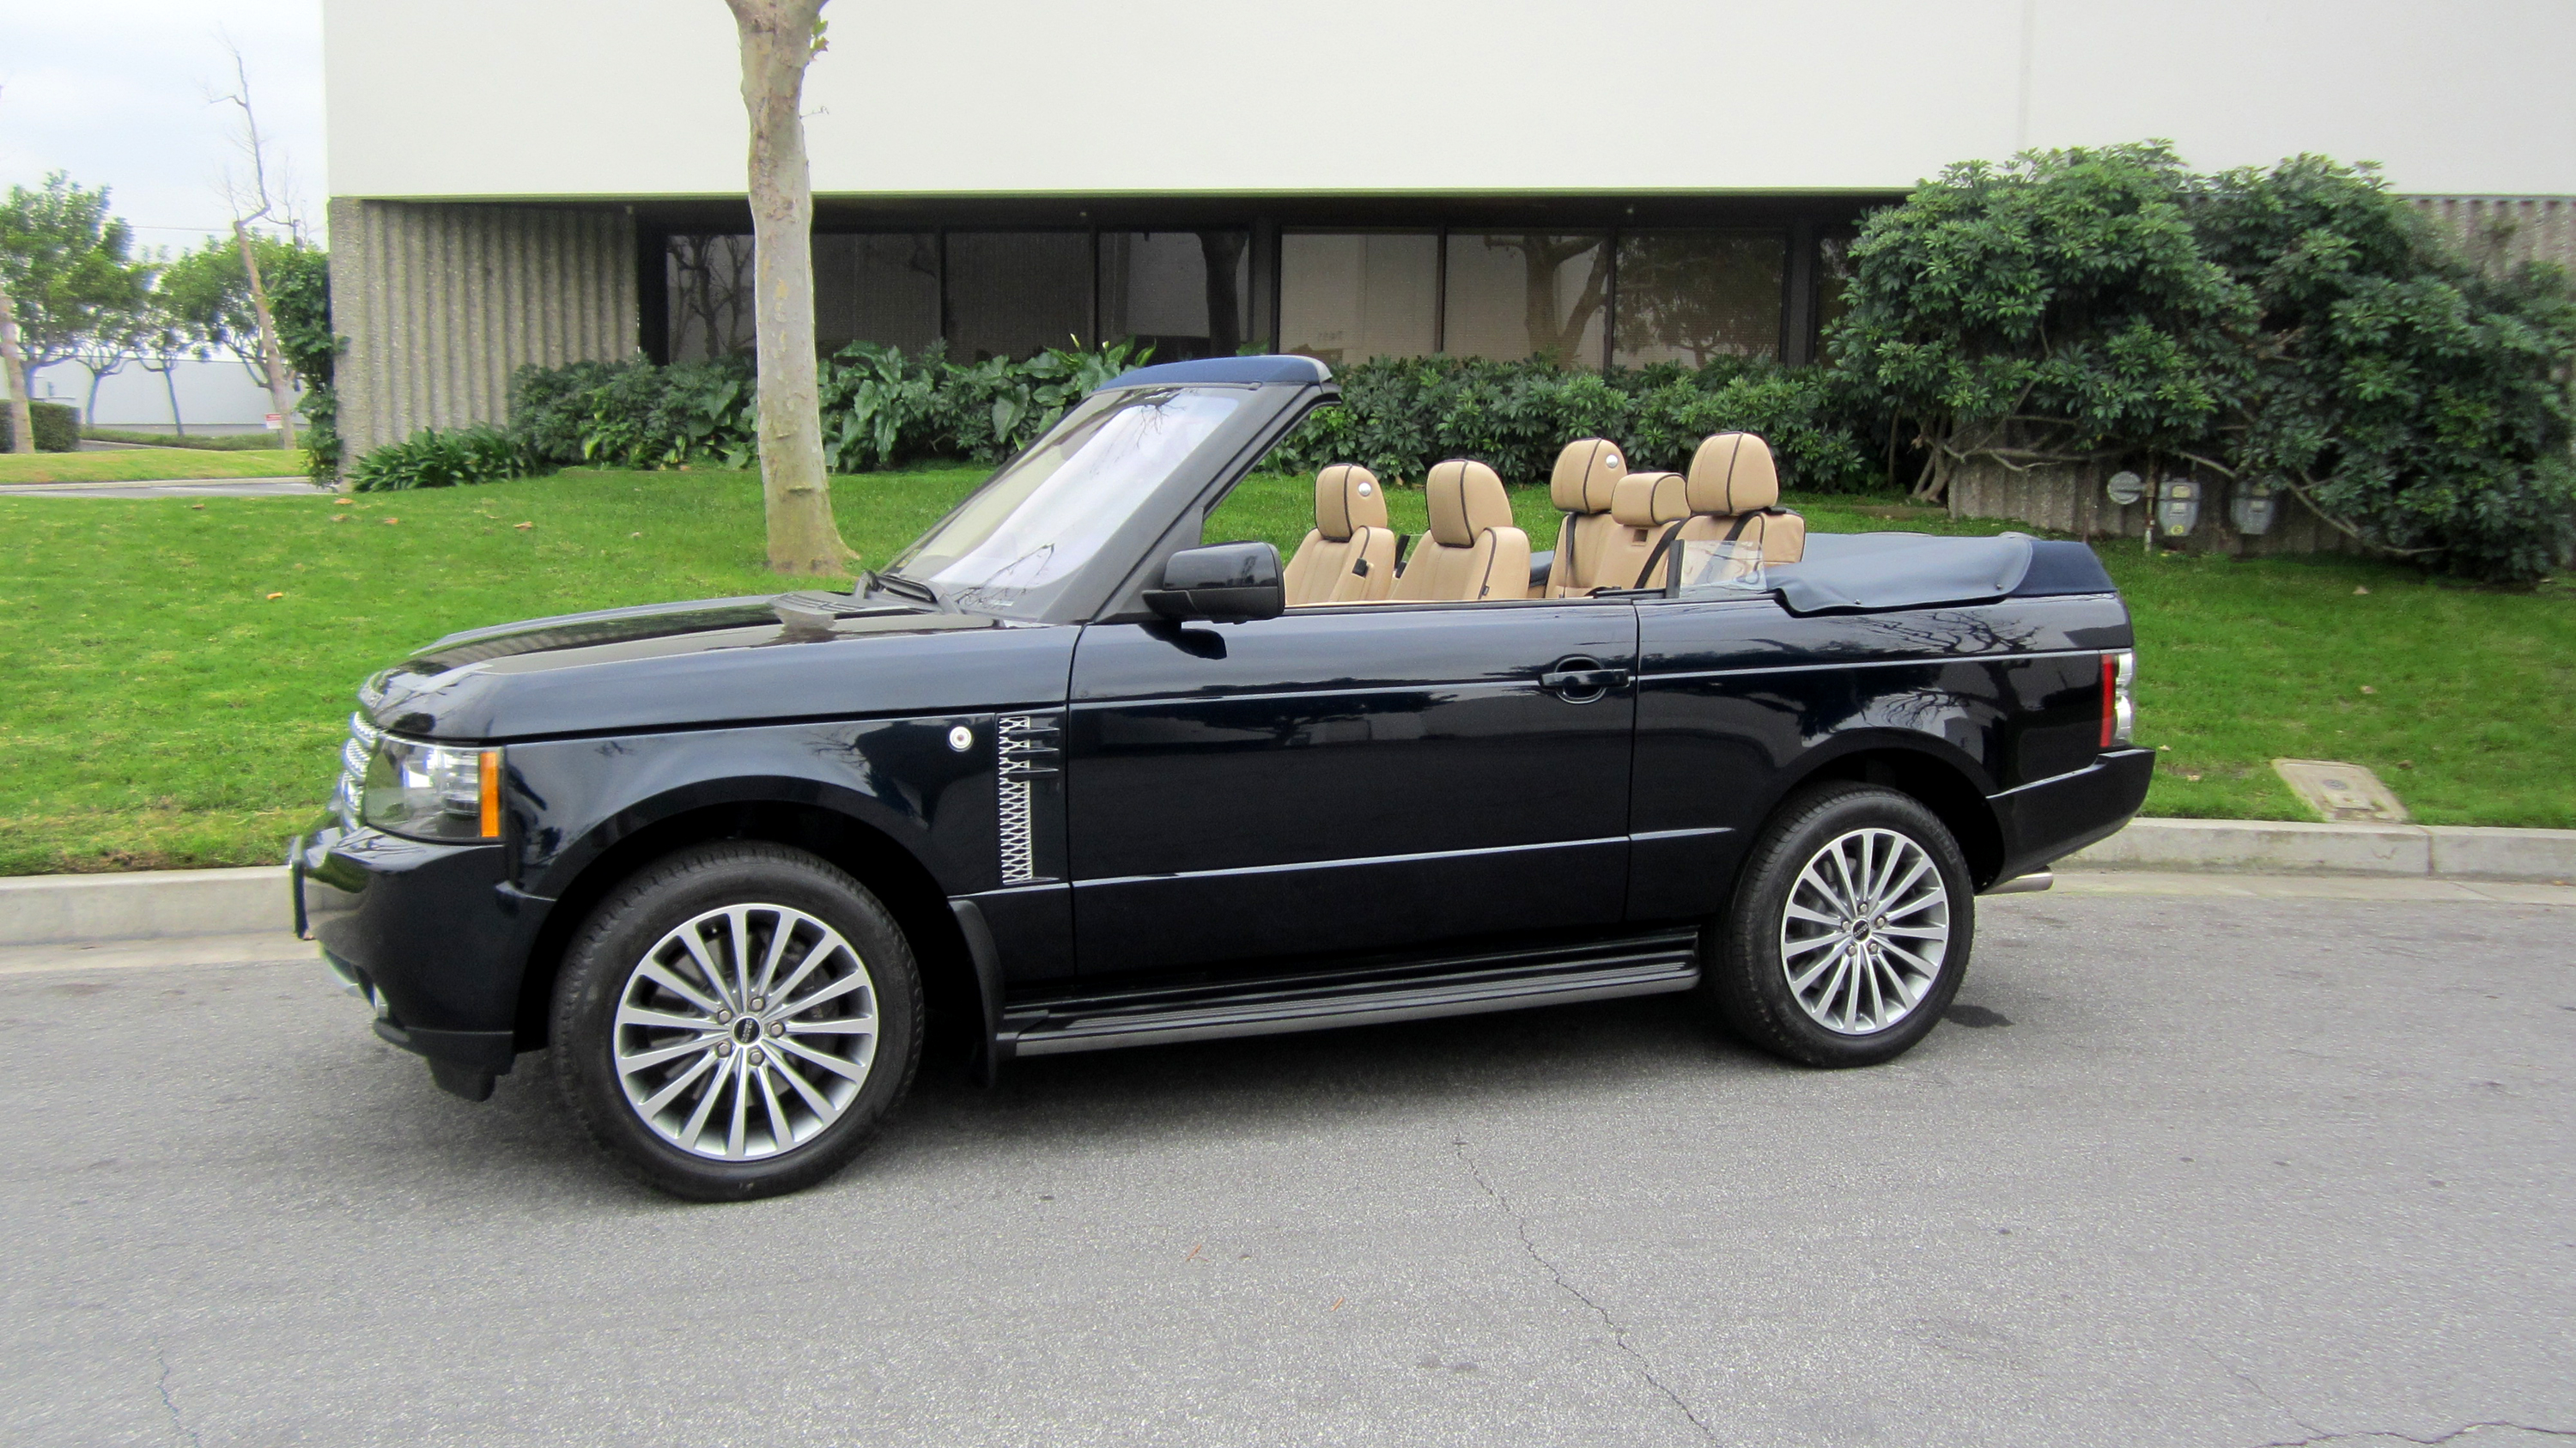 2 door Range Rover Convertible – MEGA